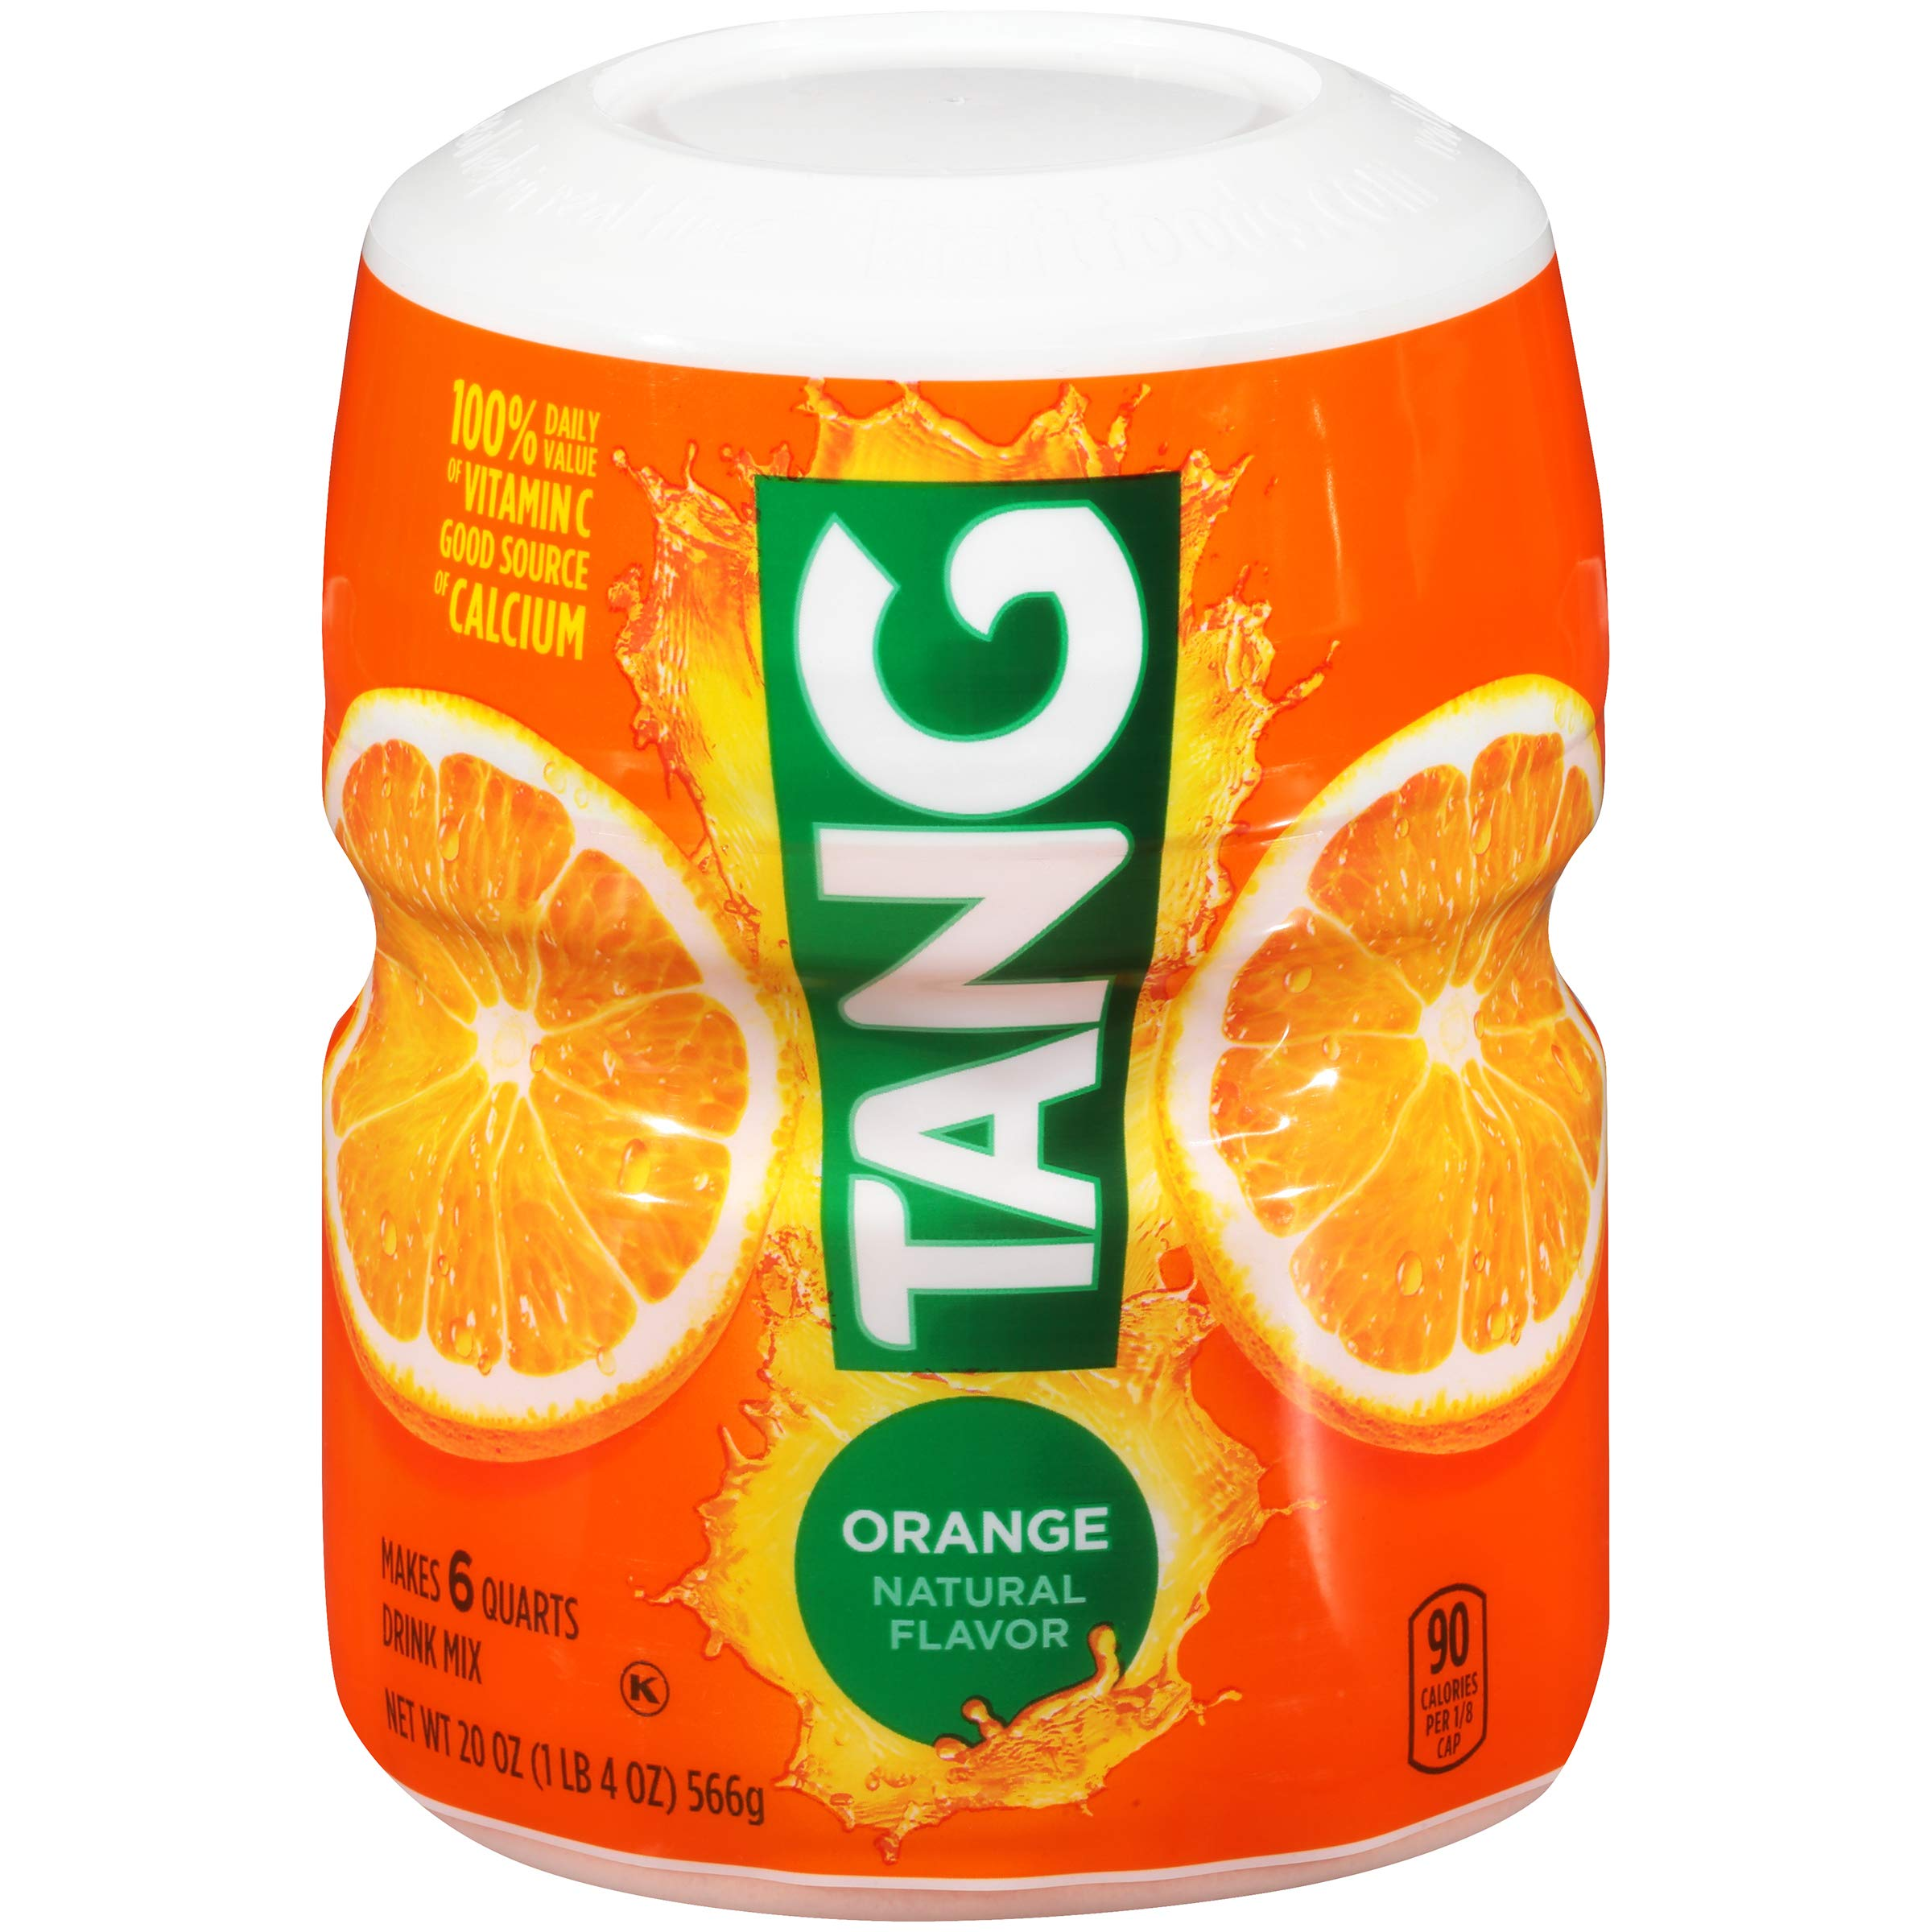 Tang Orange Powdered Drink Mix, Makes 6 Quarts (20oz Canister, Pack of 6)